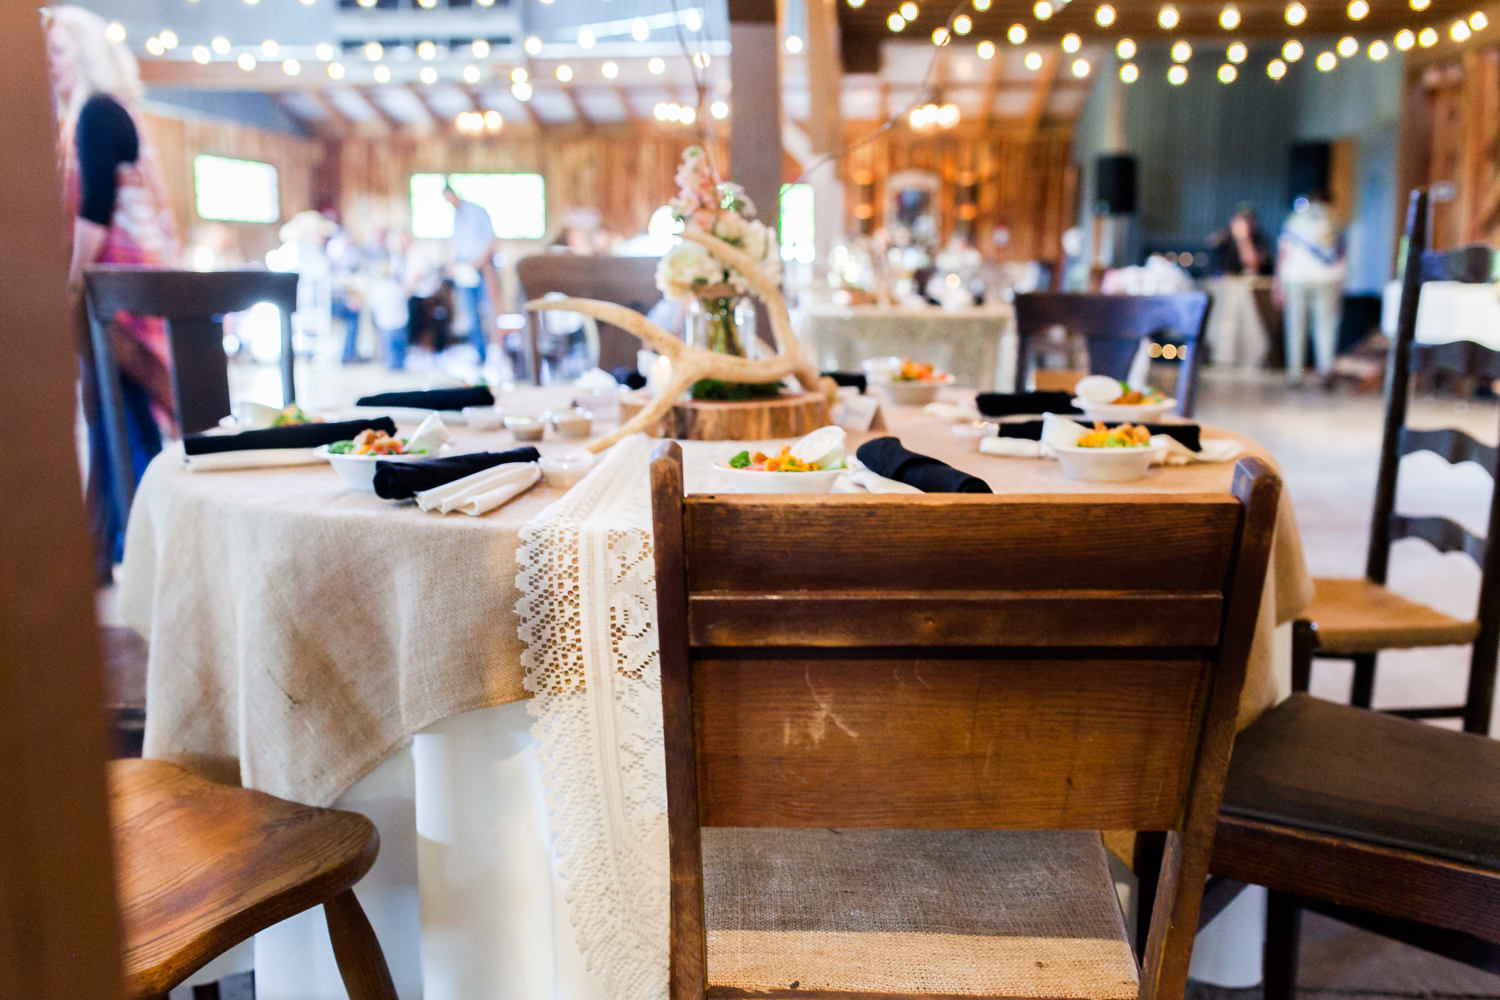 oklahoma wedding photographer pasture at willows ranch broken bow rustic mismatched chairs dinner